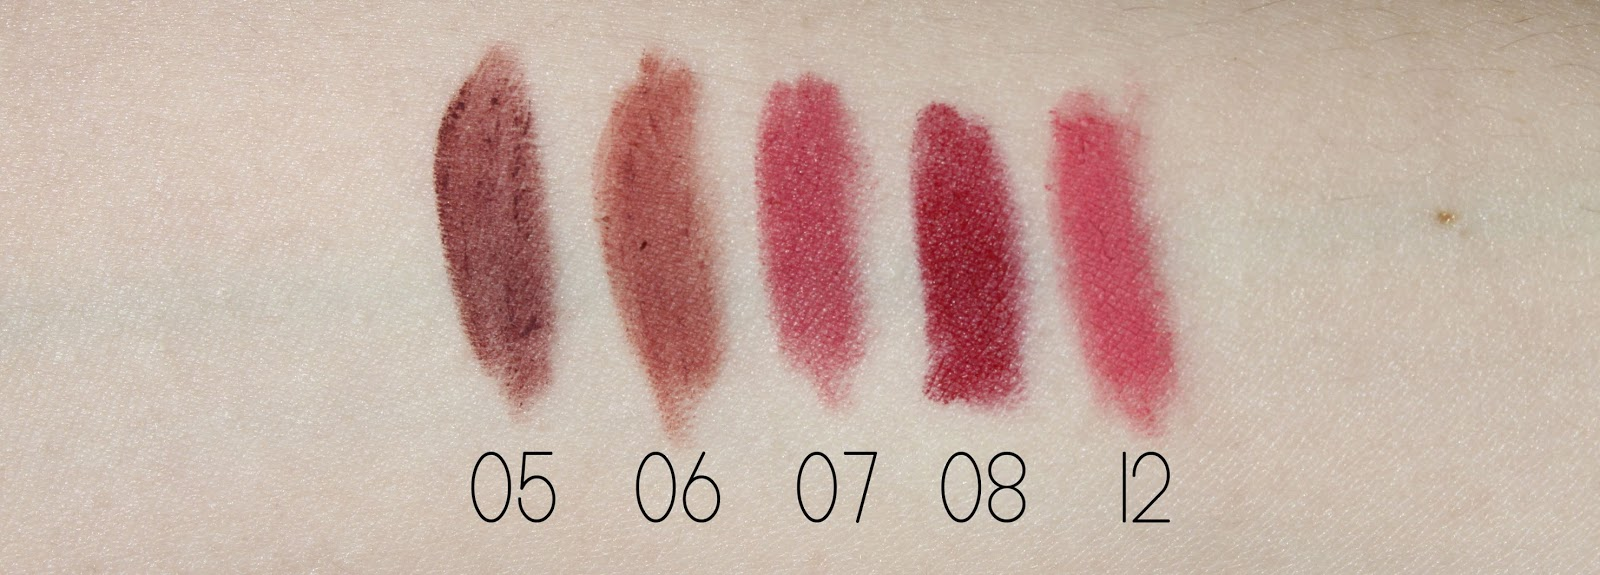 Essence Lip Liners Arm Swatch